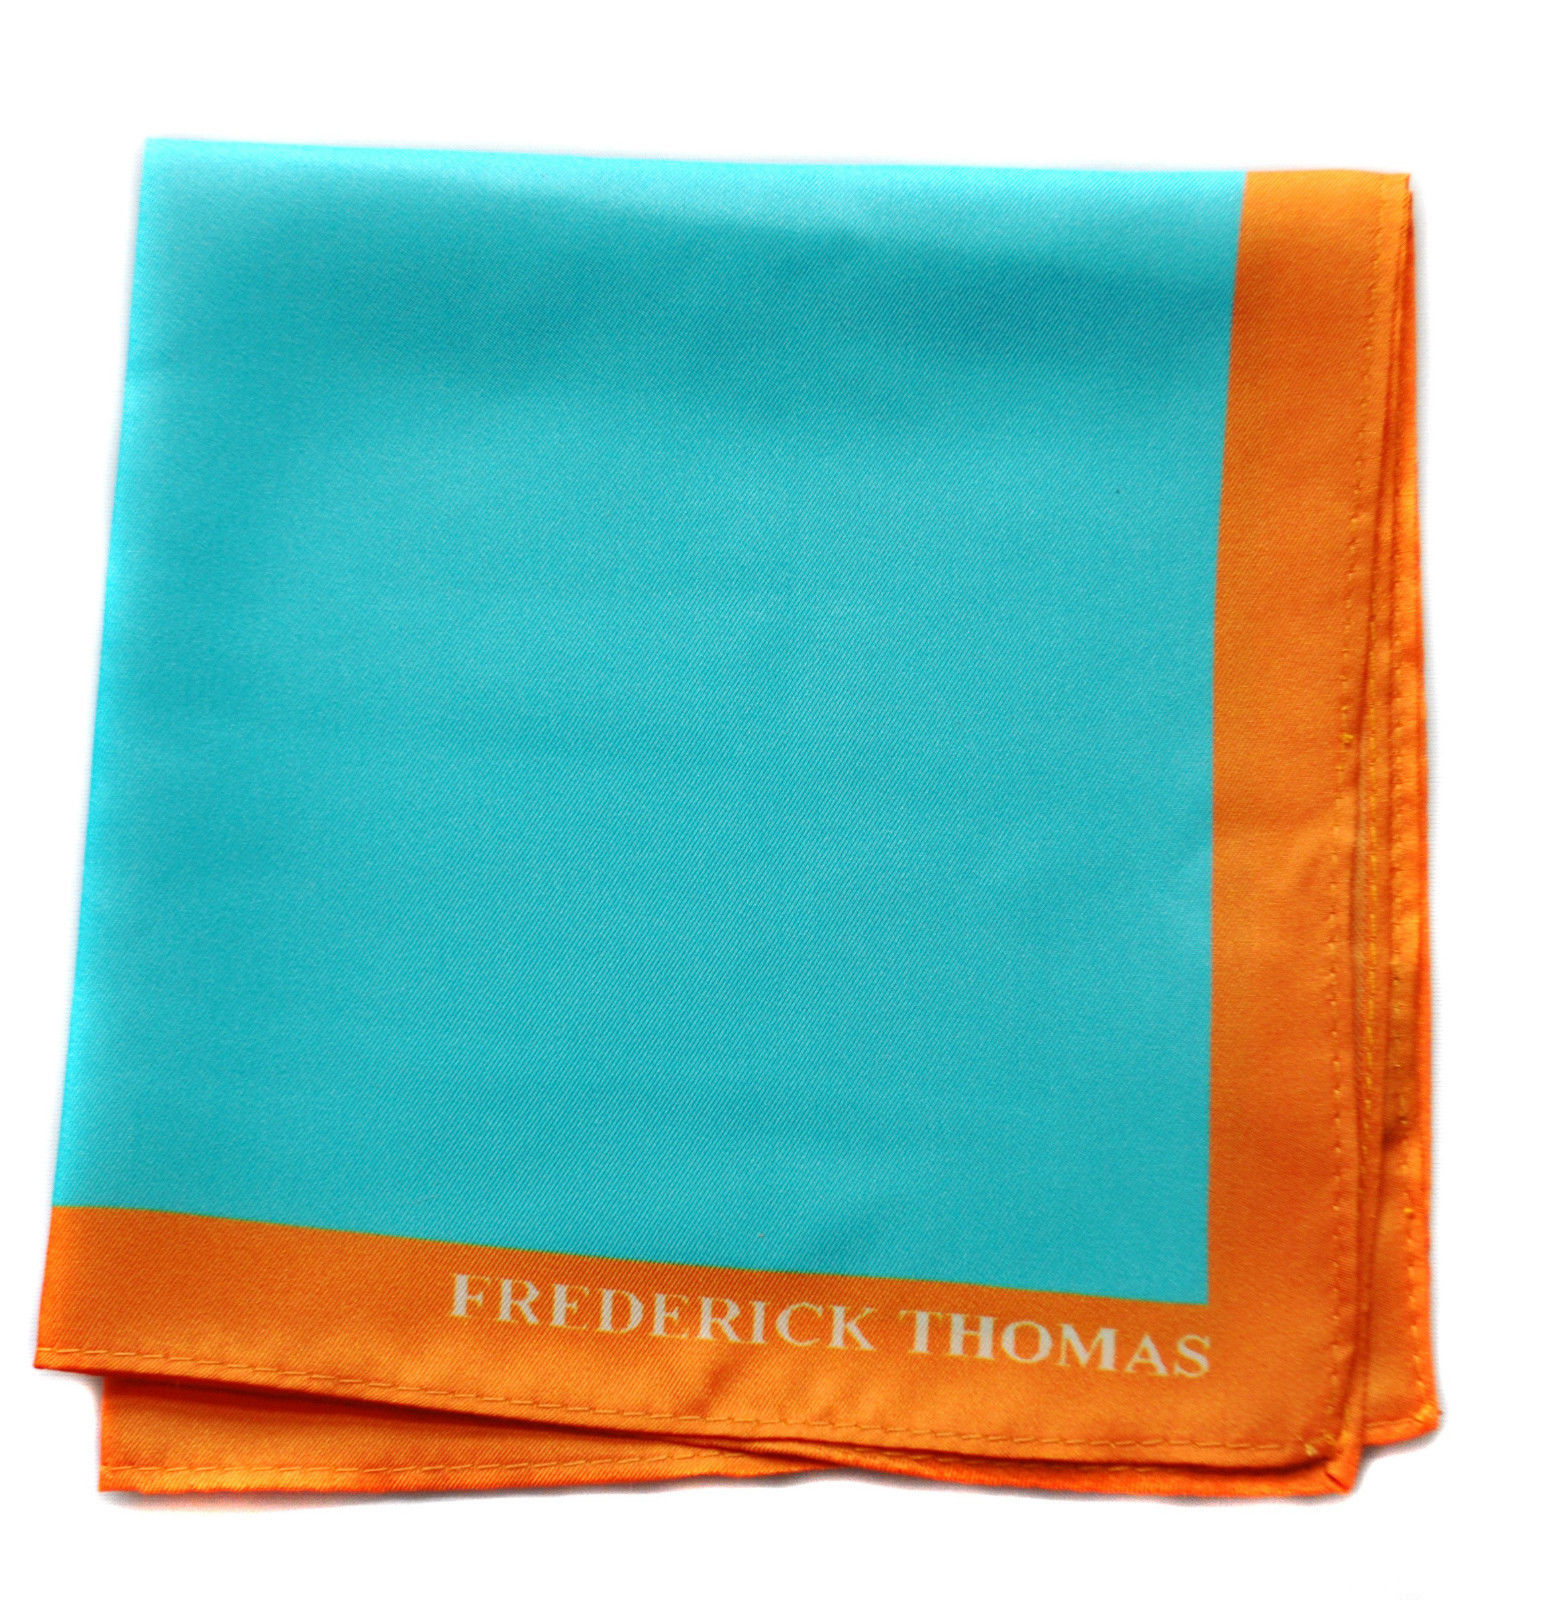 Frederick Thomas turquoise pocket square with orange edging handkerchief FT1662